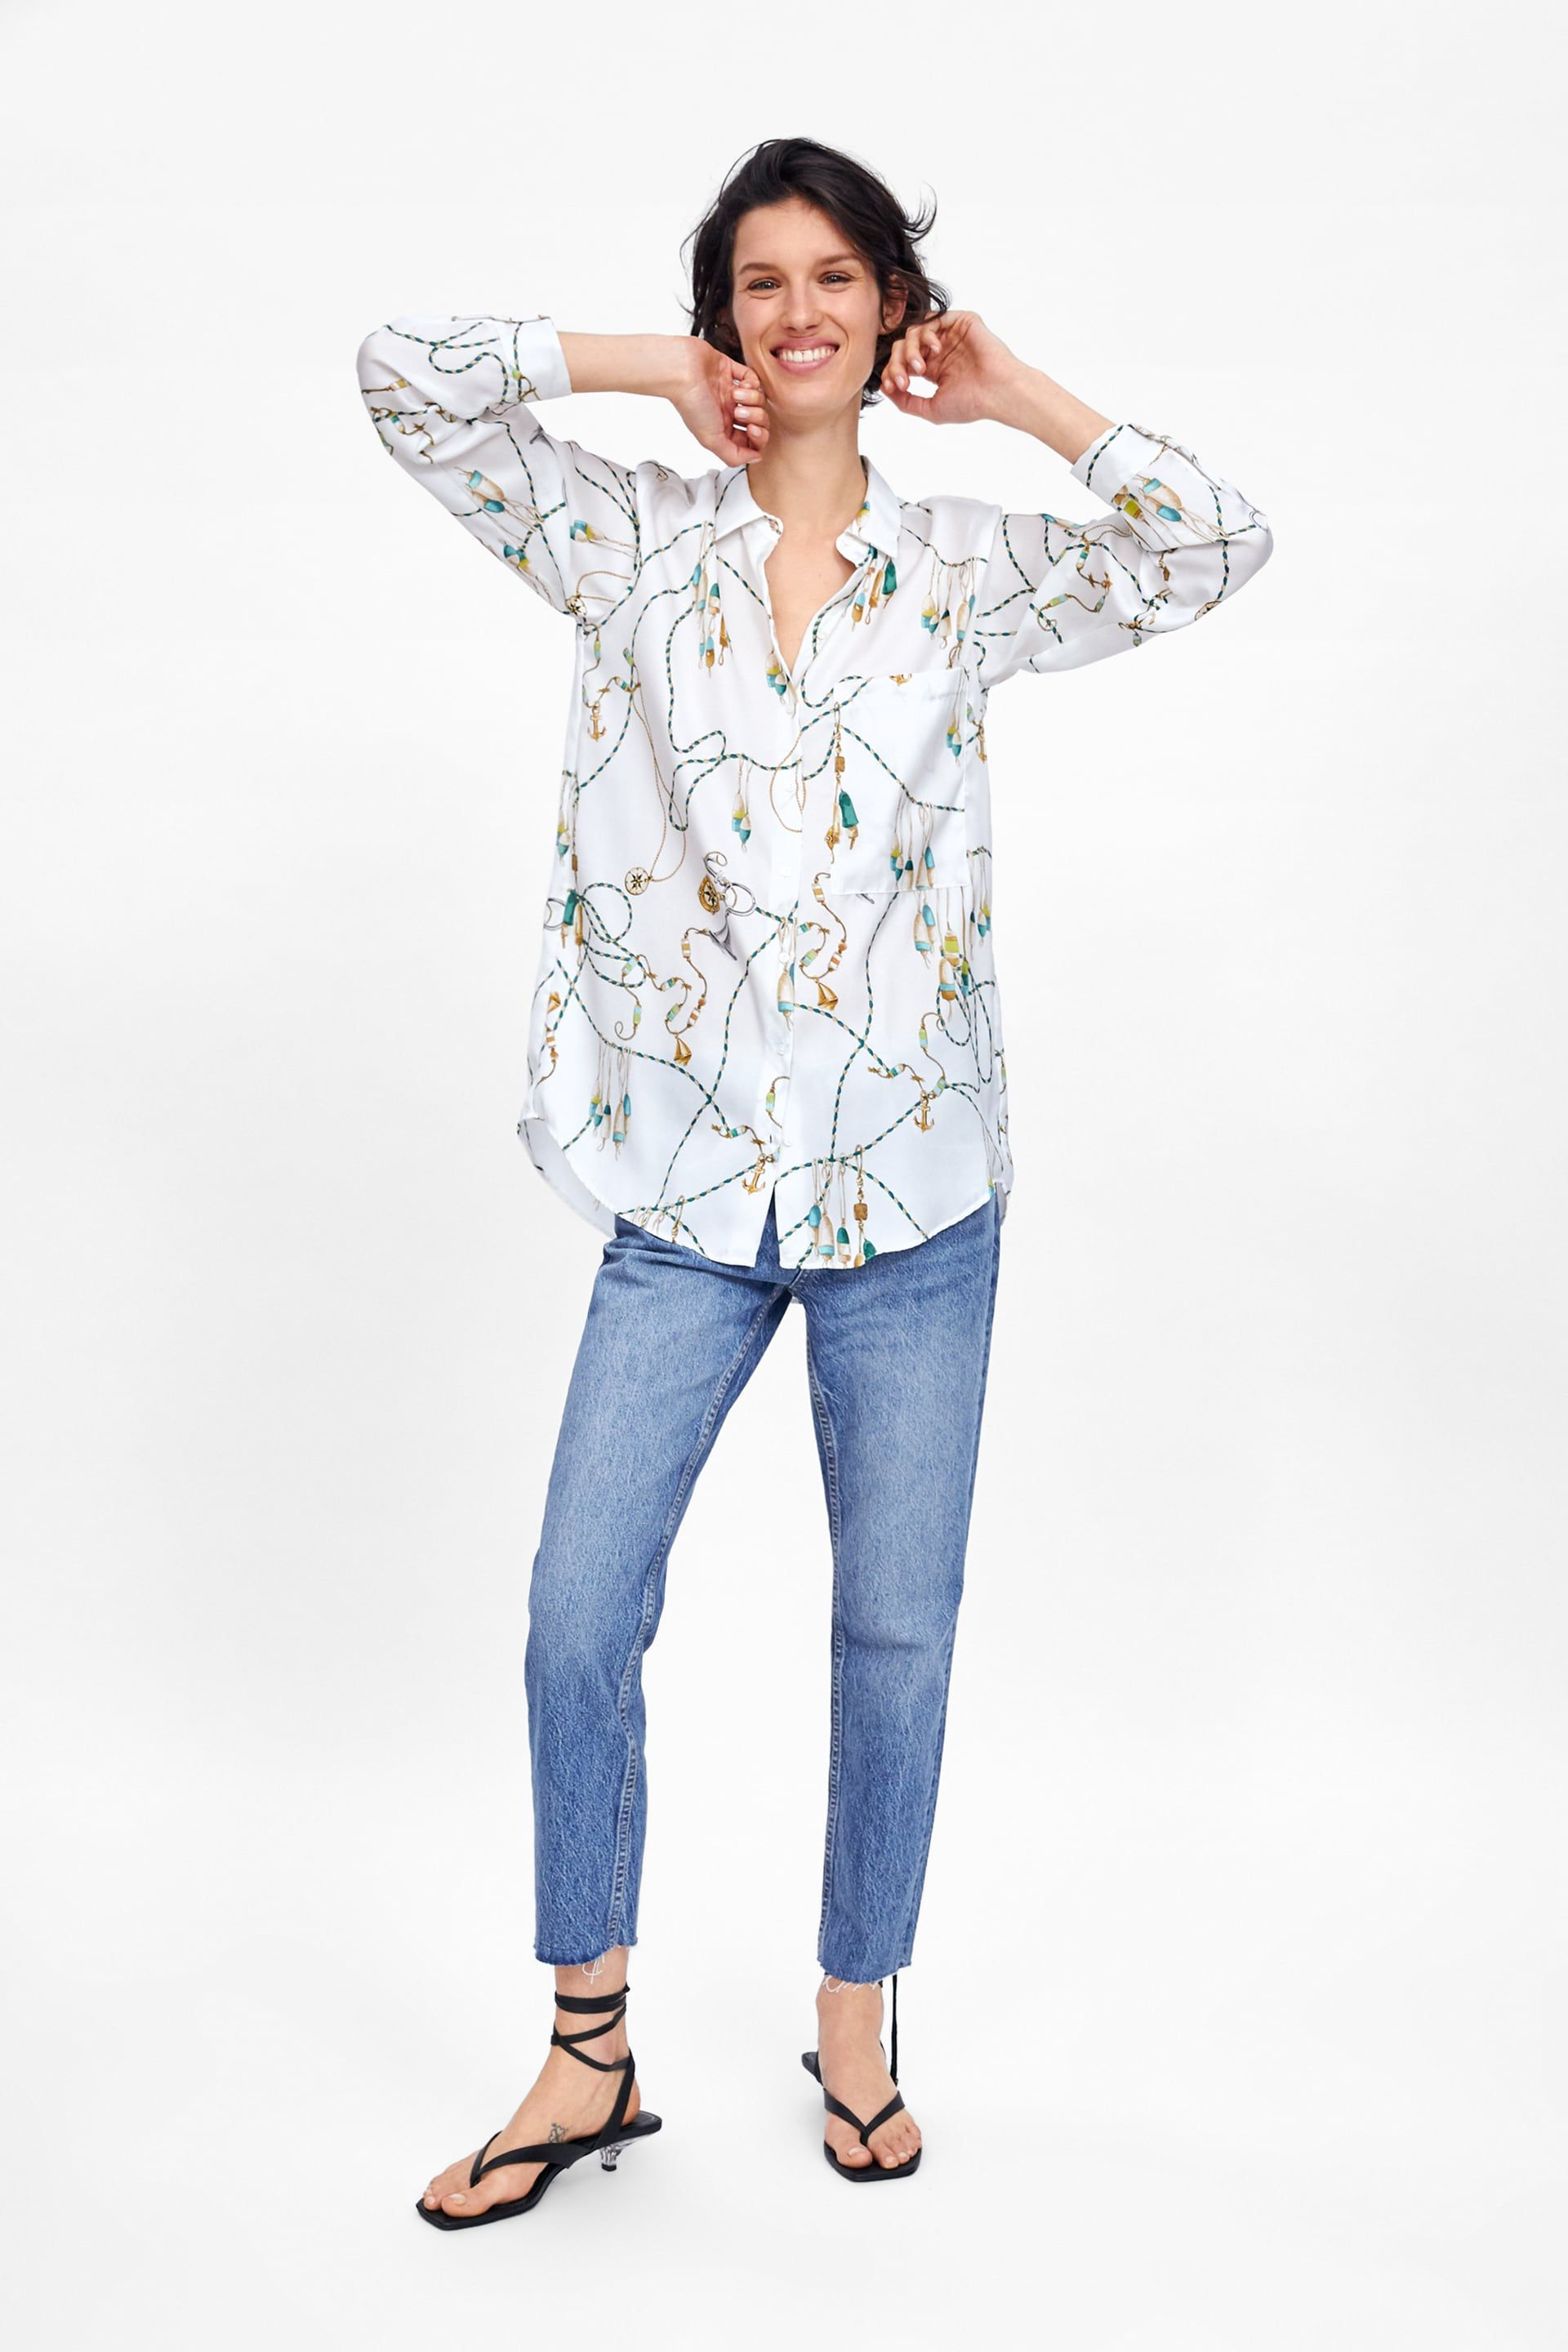 b30c6dcdff1dbc PRINTED SHIRT - NEW IN-WOMAN